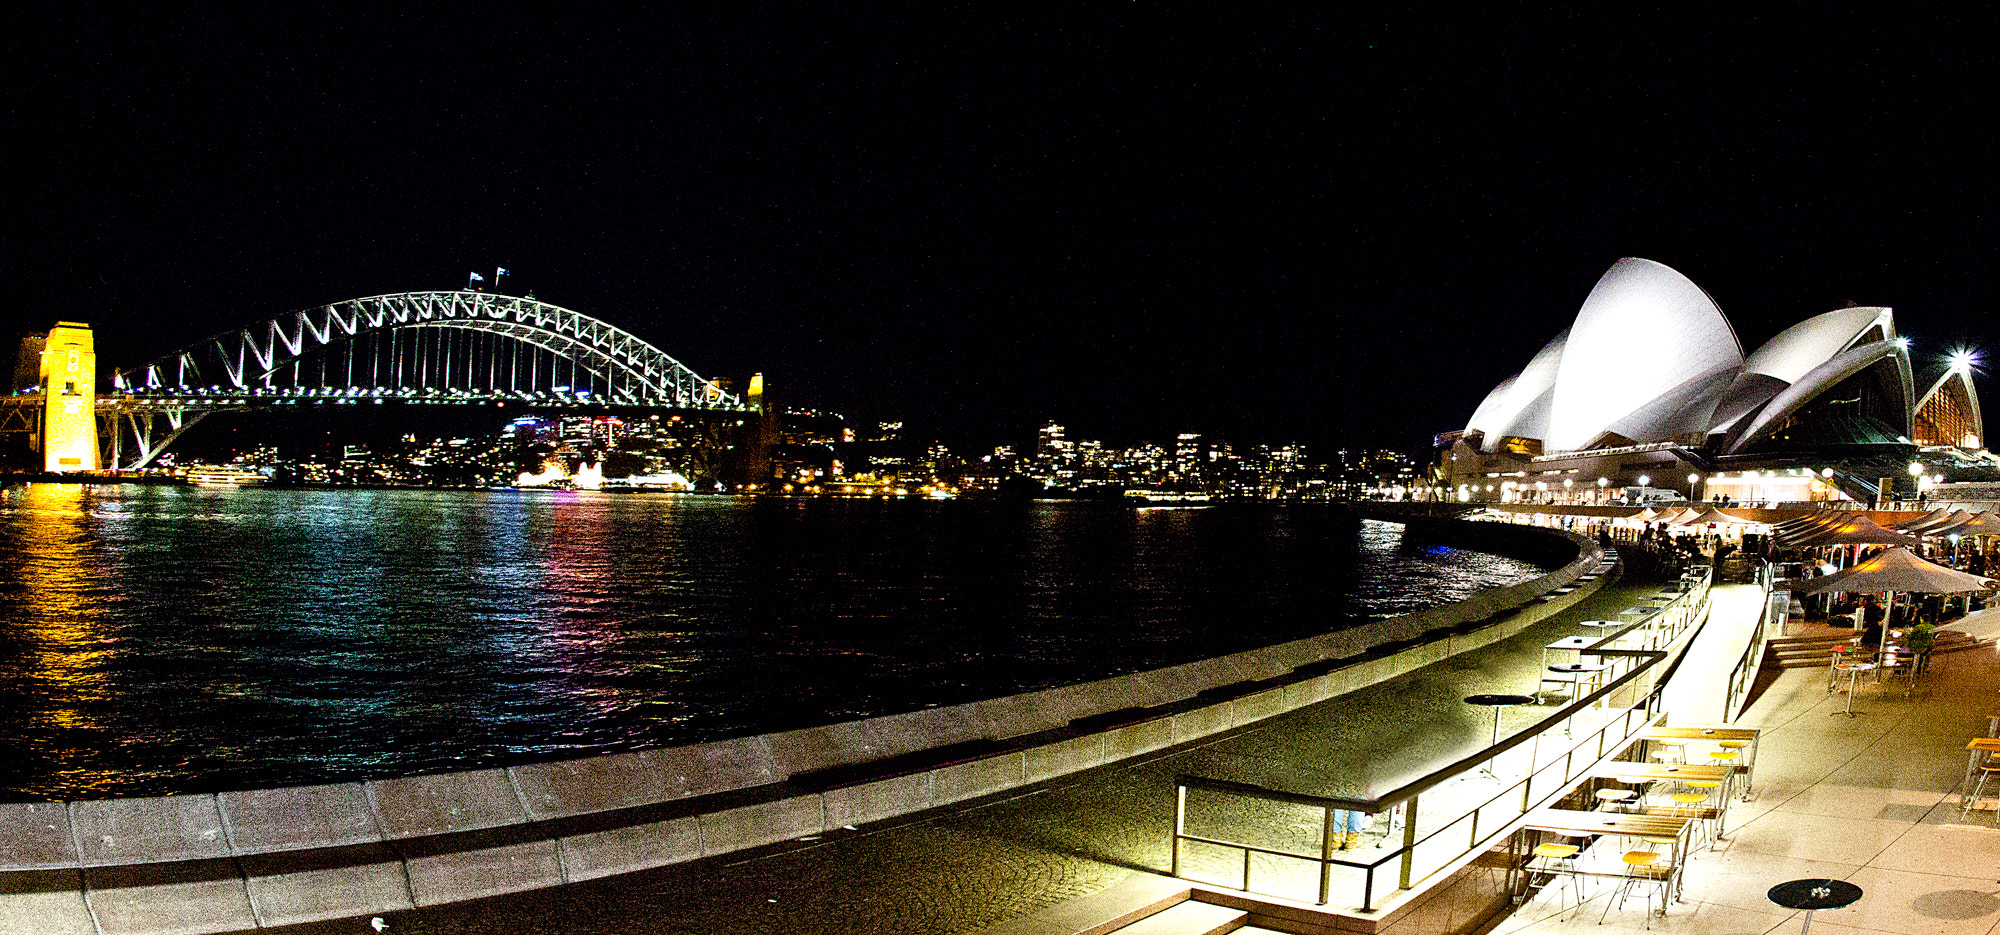 Photograph Opera house and Bar - in wide. by Hendrik Cuaca on 500px